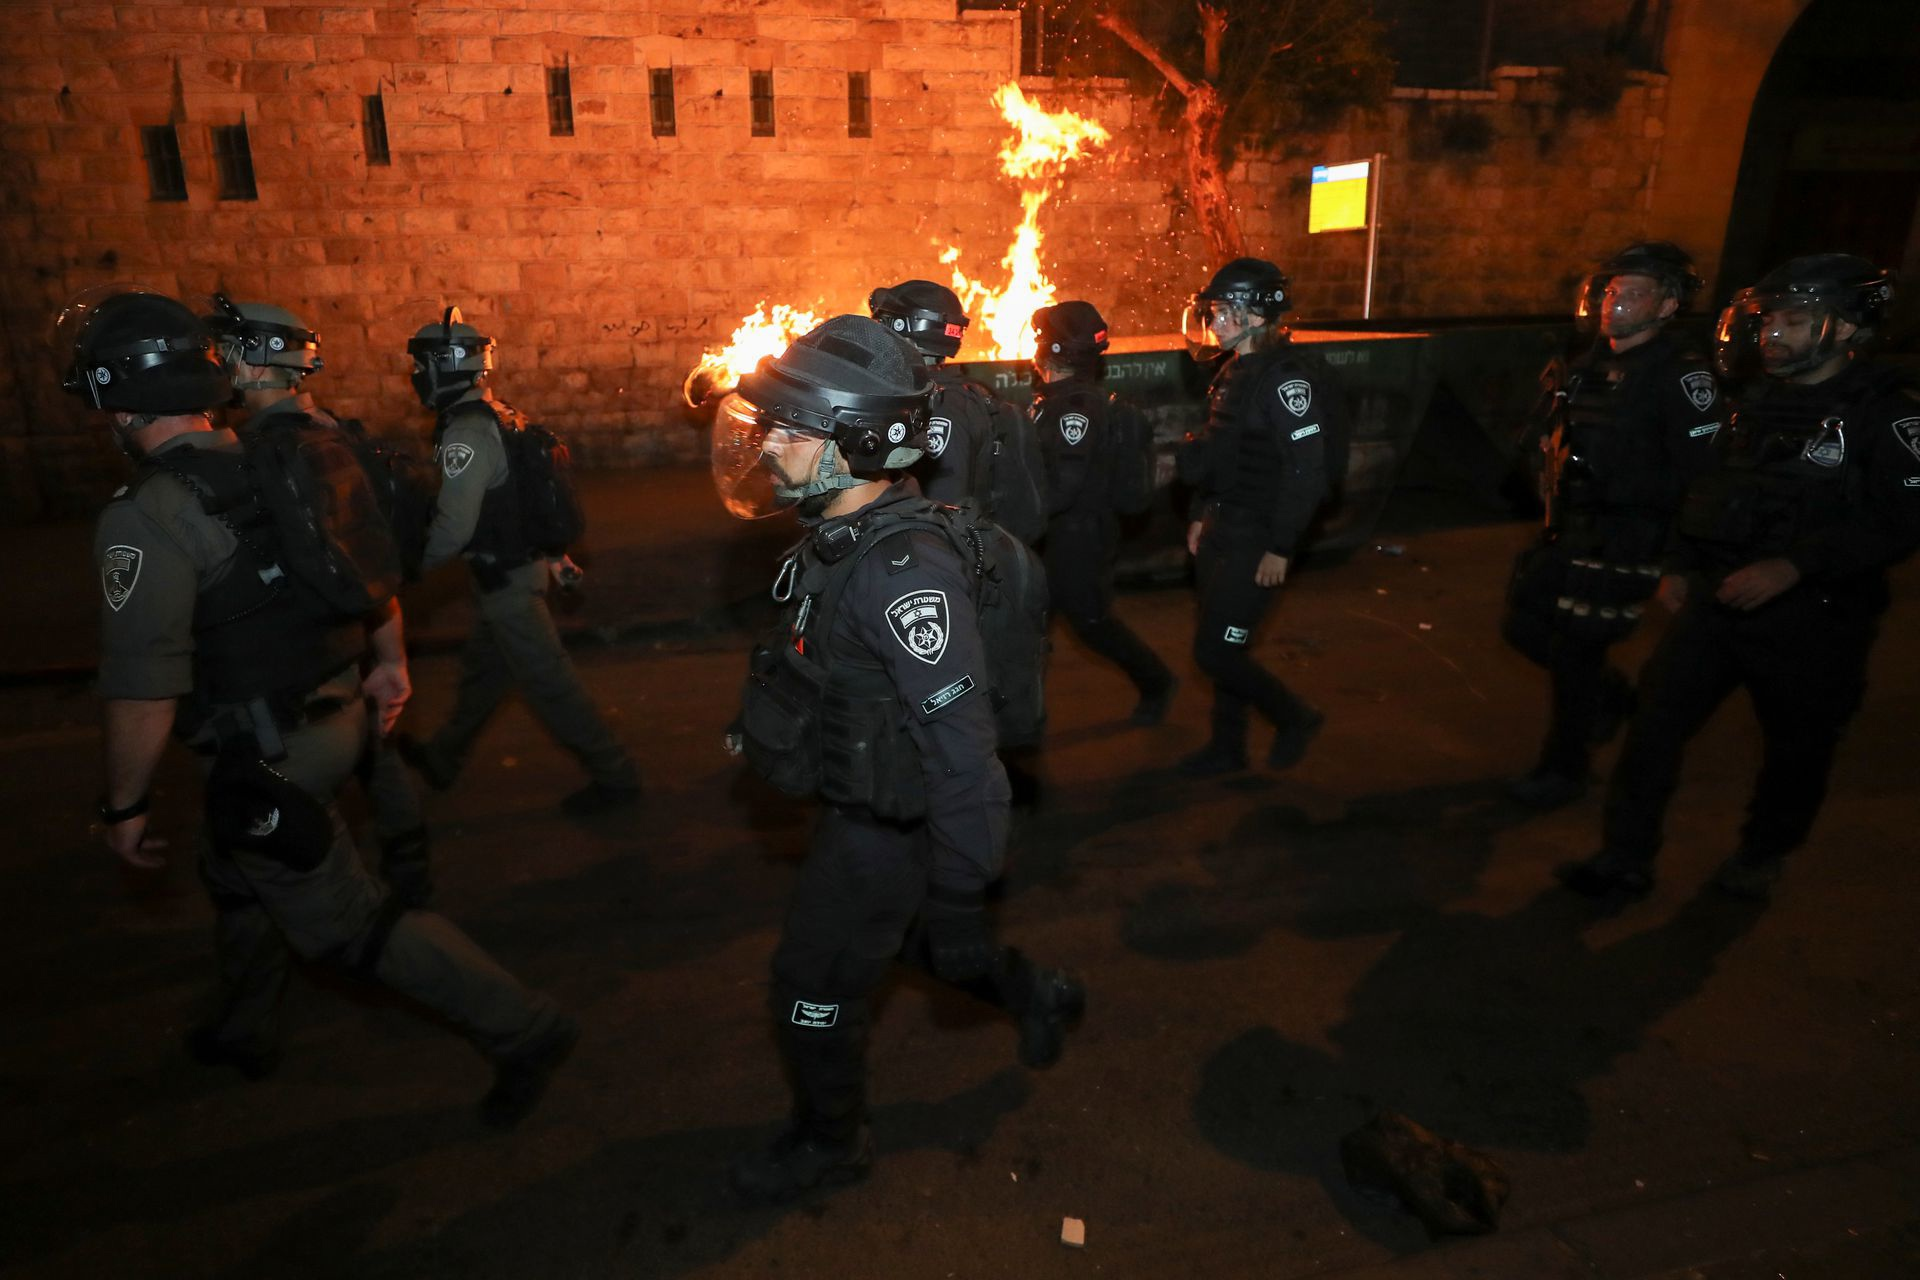 Palestinians and Israeli security forces clash overnight in Jerusalem